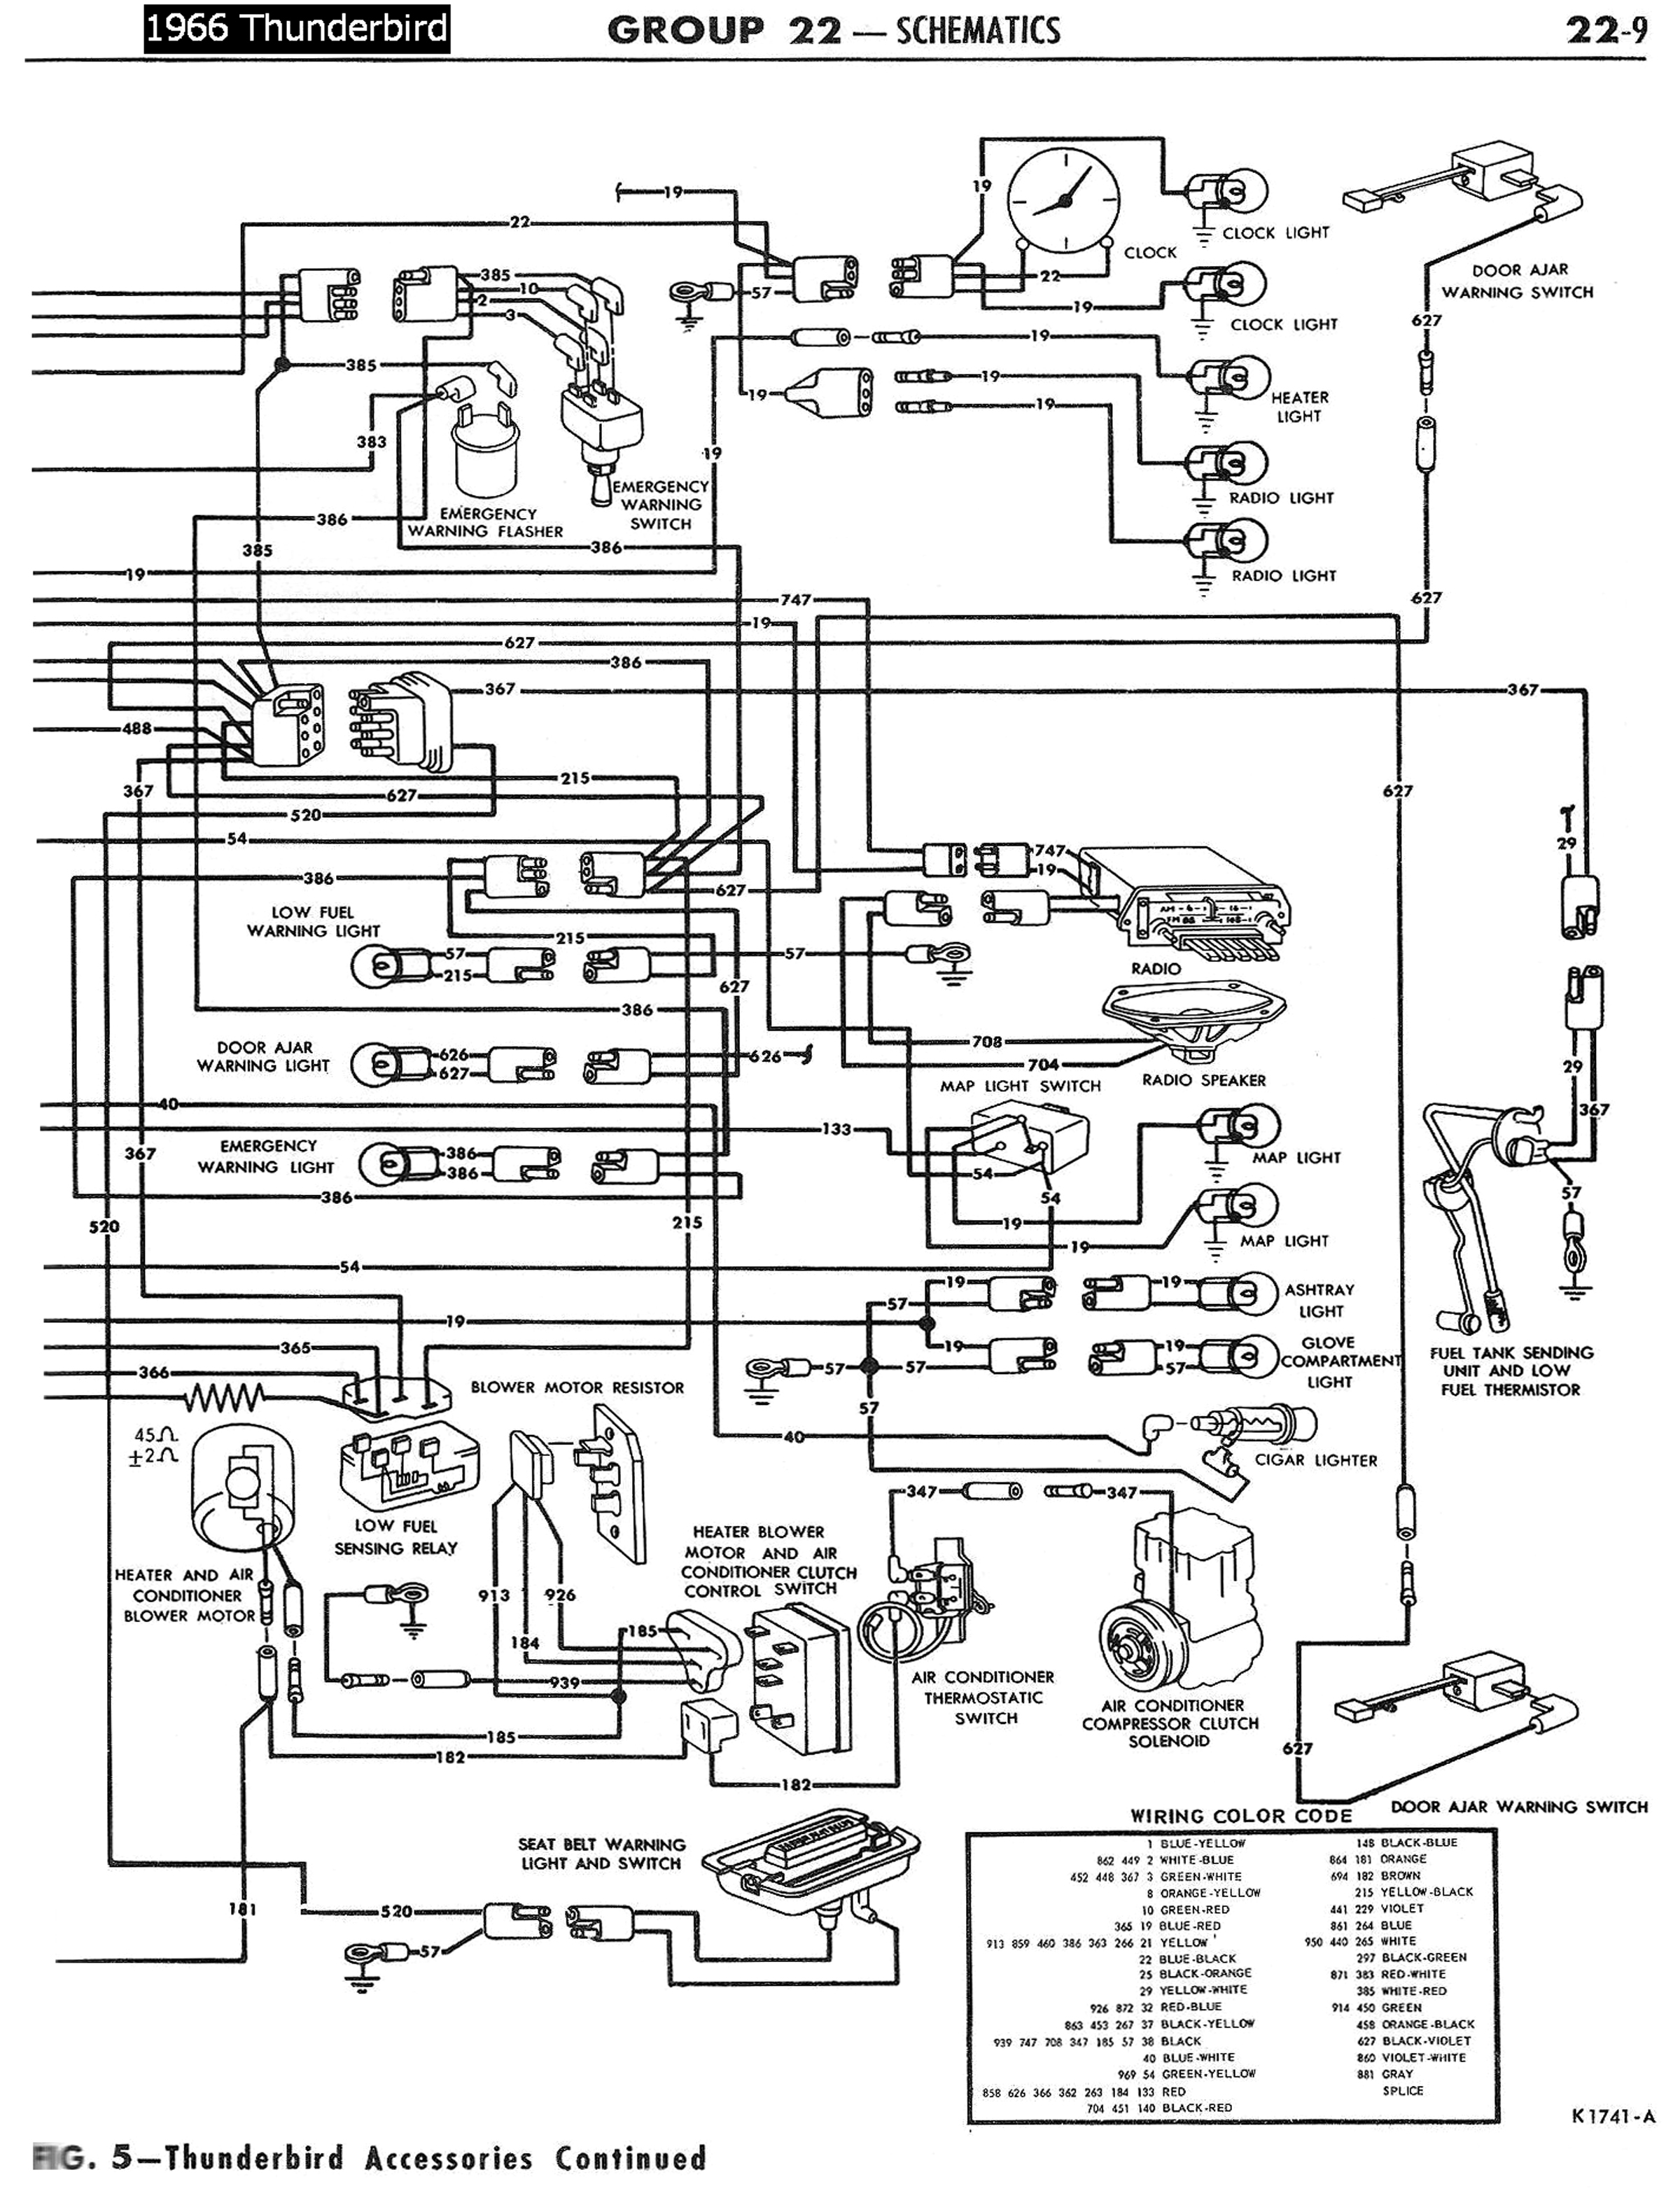 [DIAGRAM] 1965 T Bird Wiring Diagram Turn Signals FULL